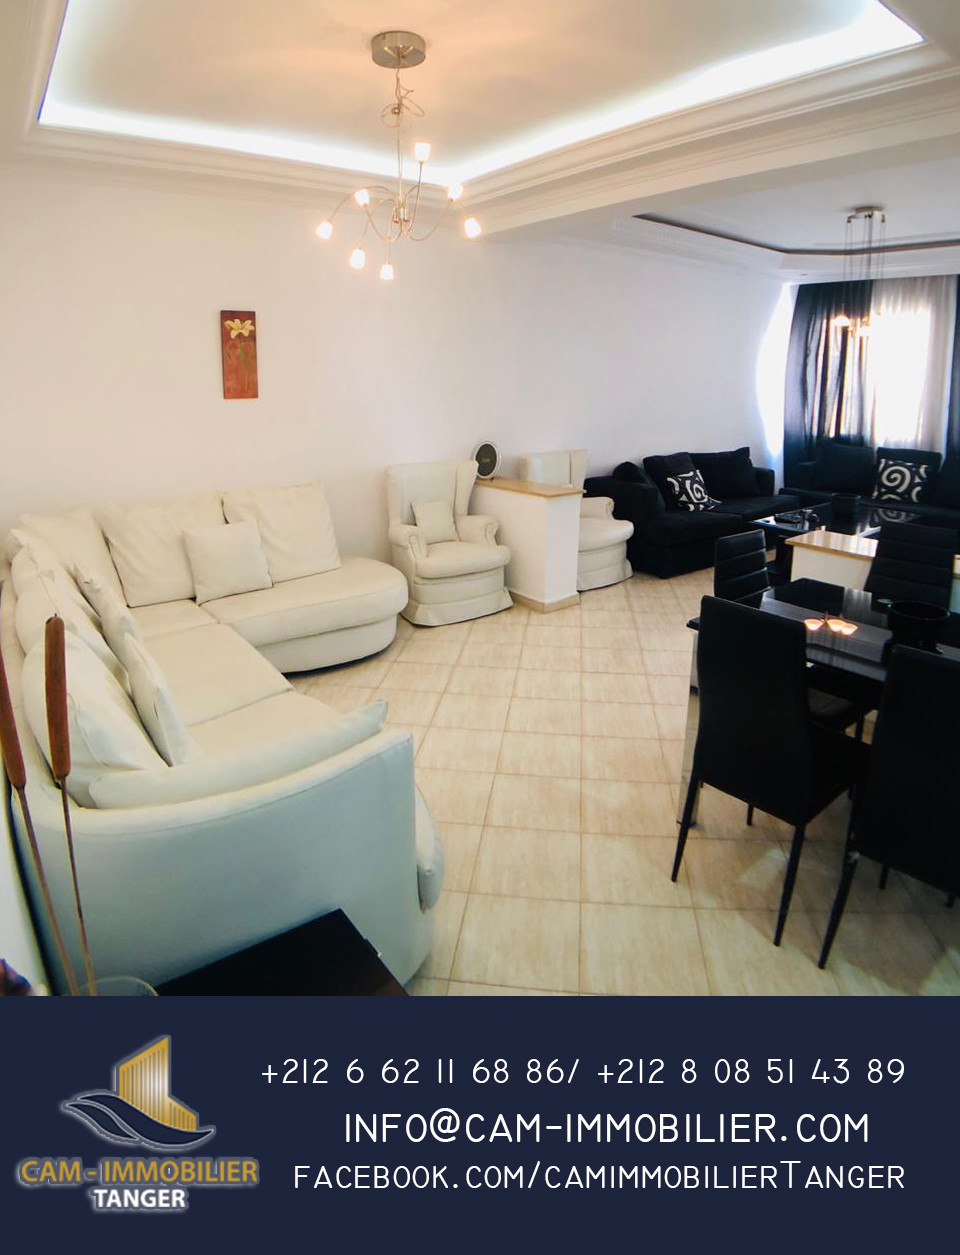 Appartement à louer Tanger Moulay Youssef